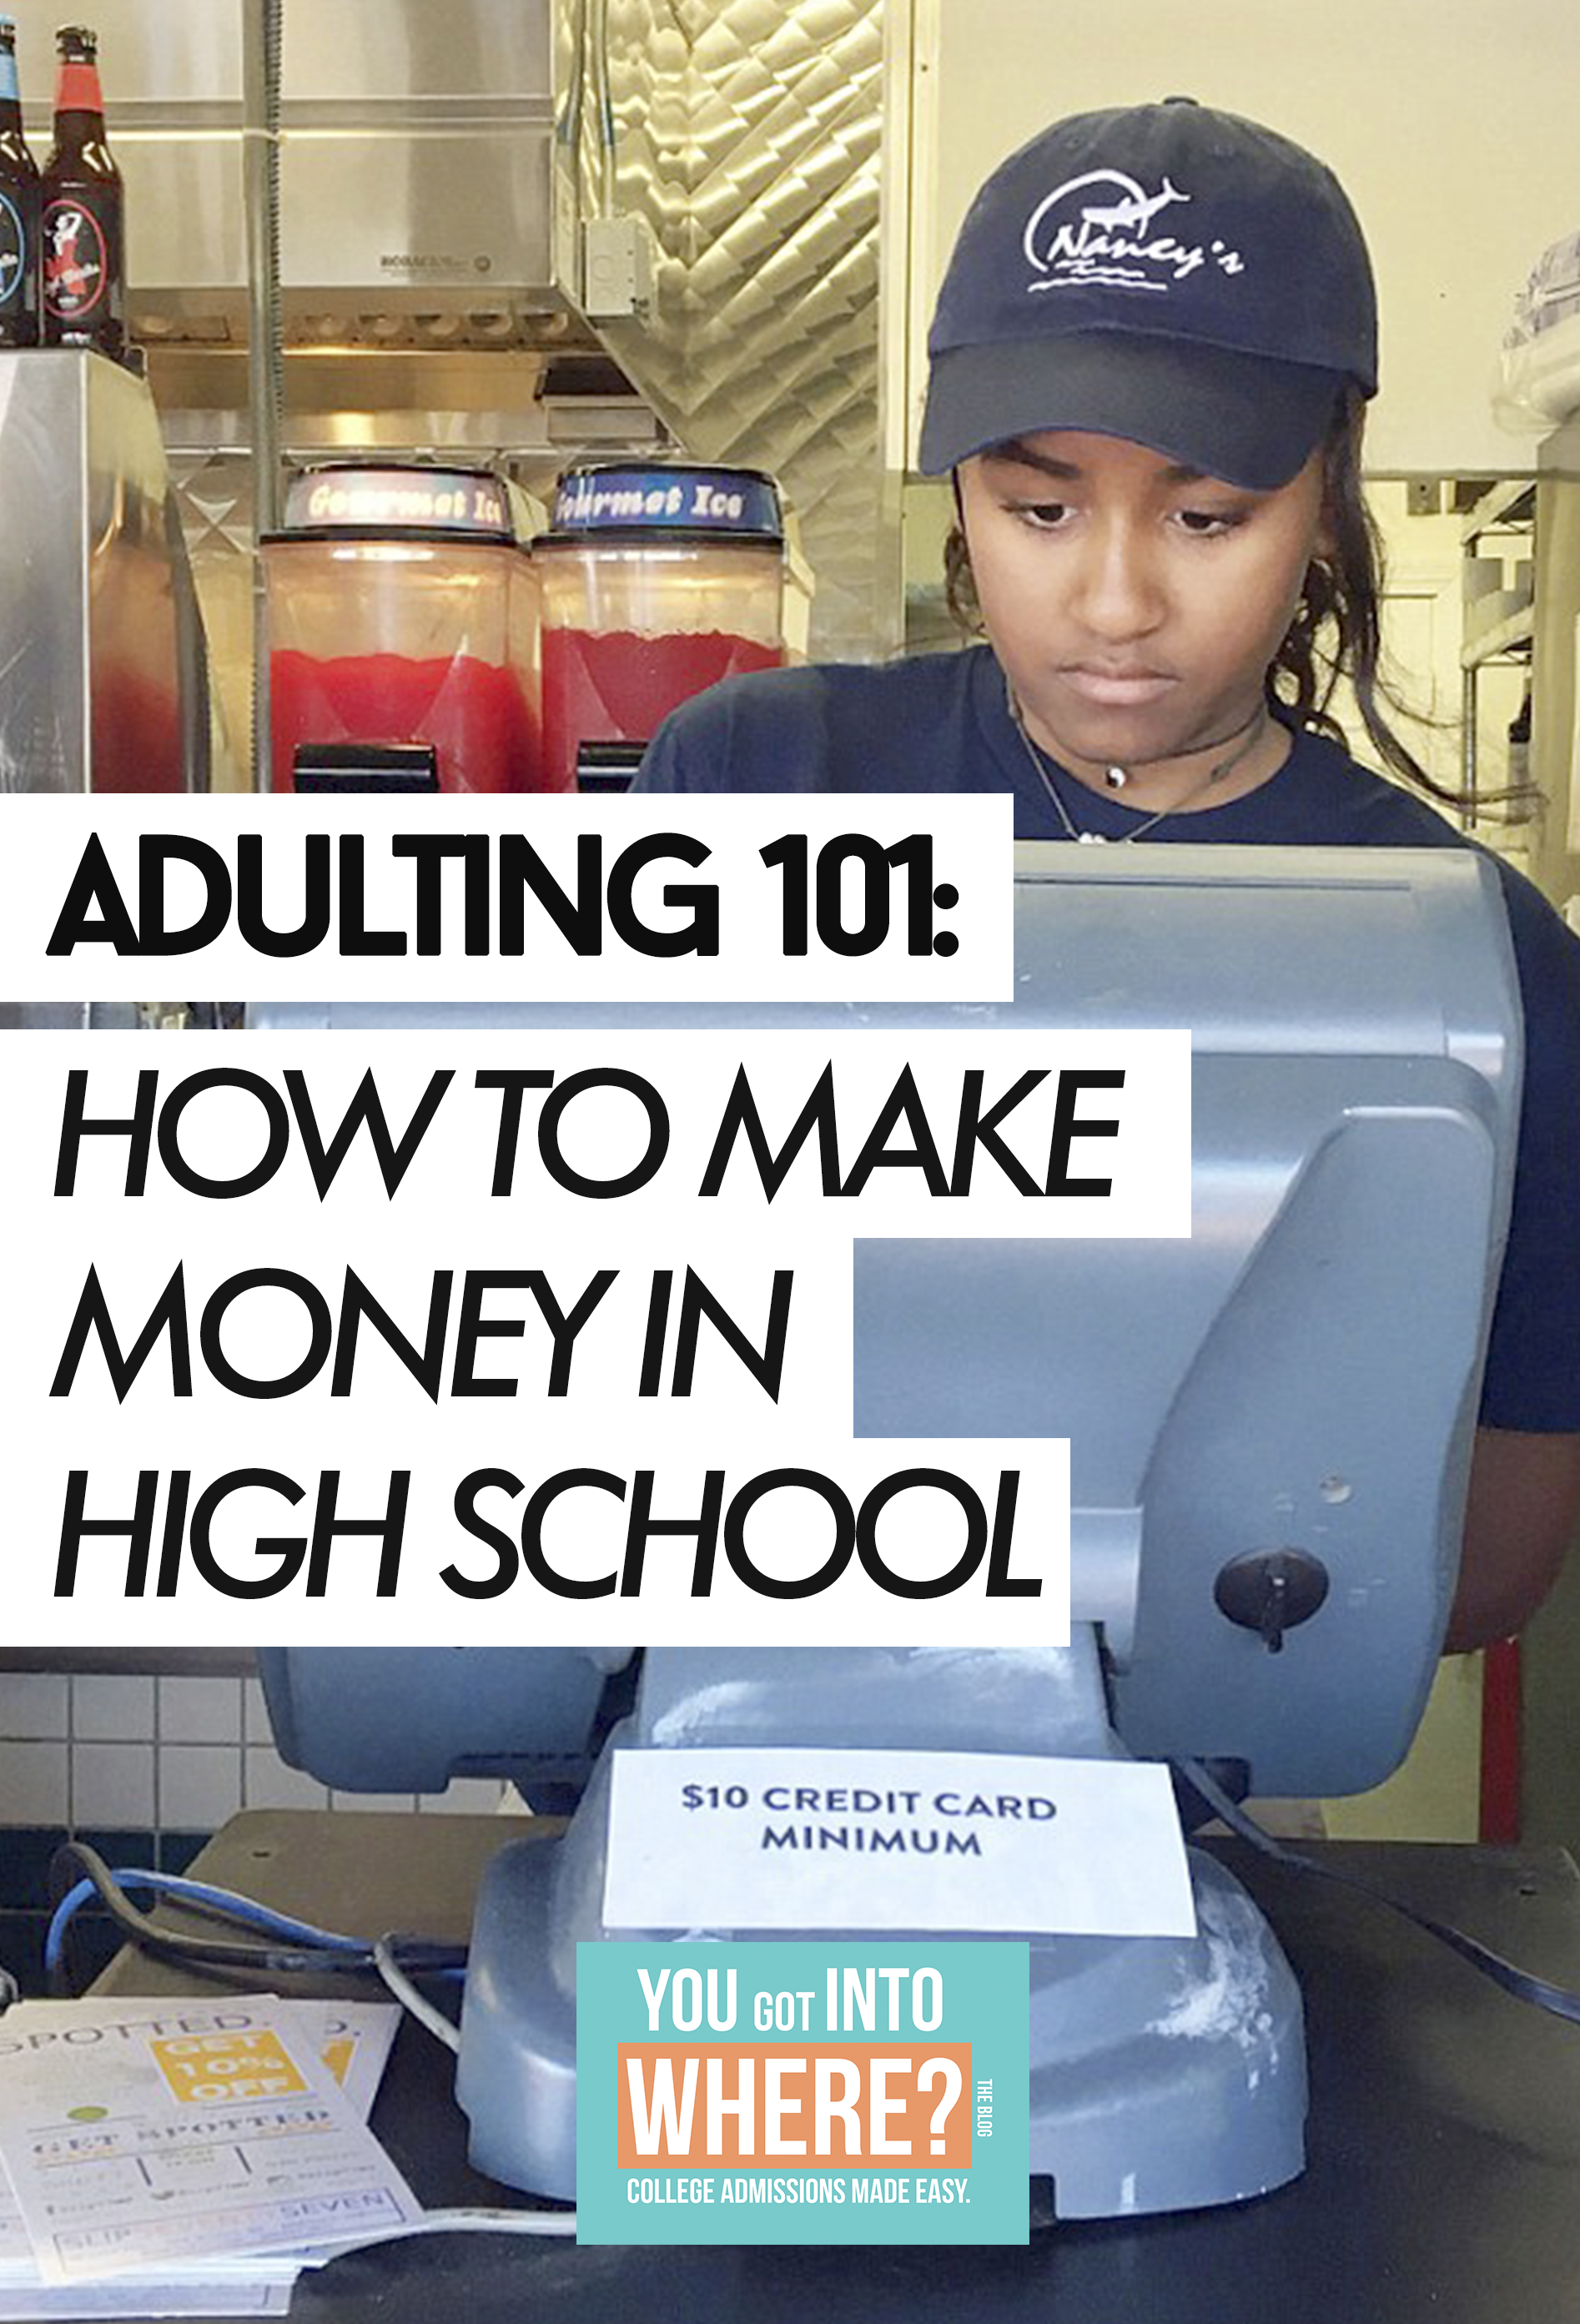 adulting-101-how-to-make-money-in-high-school.png